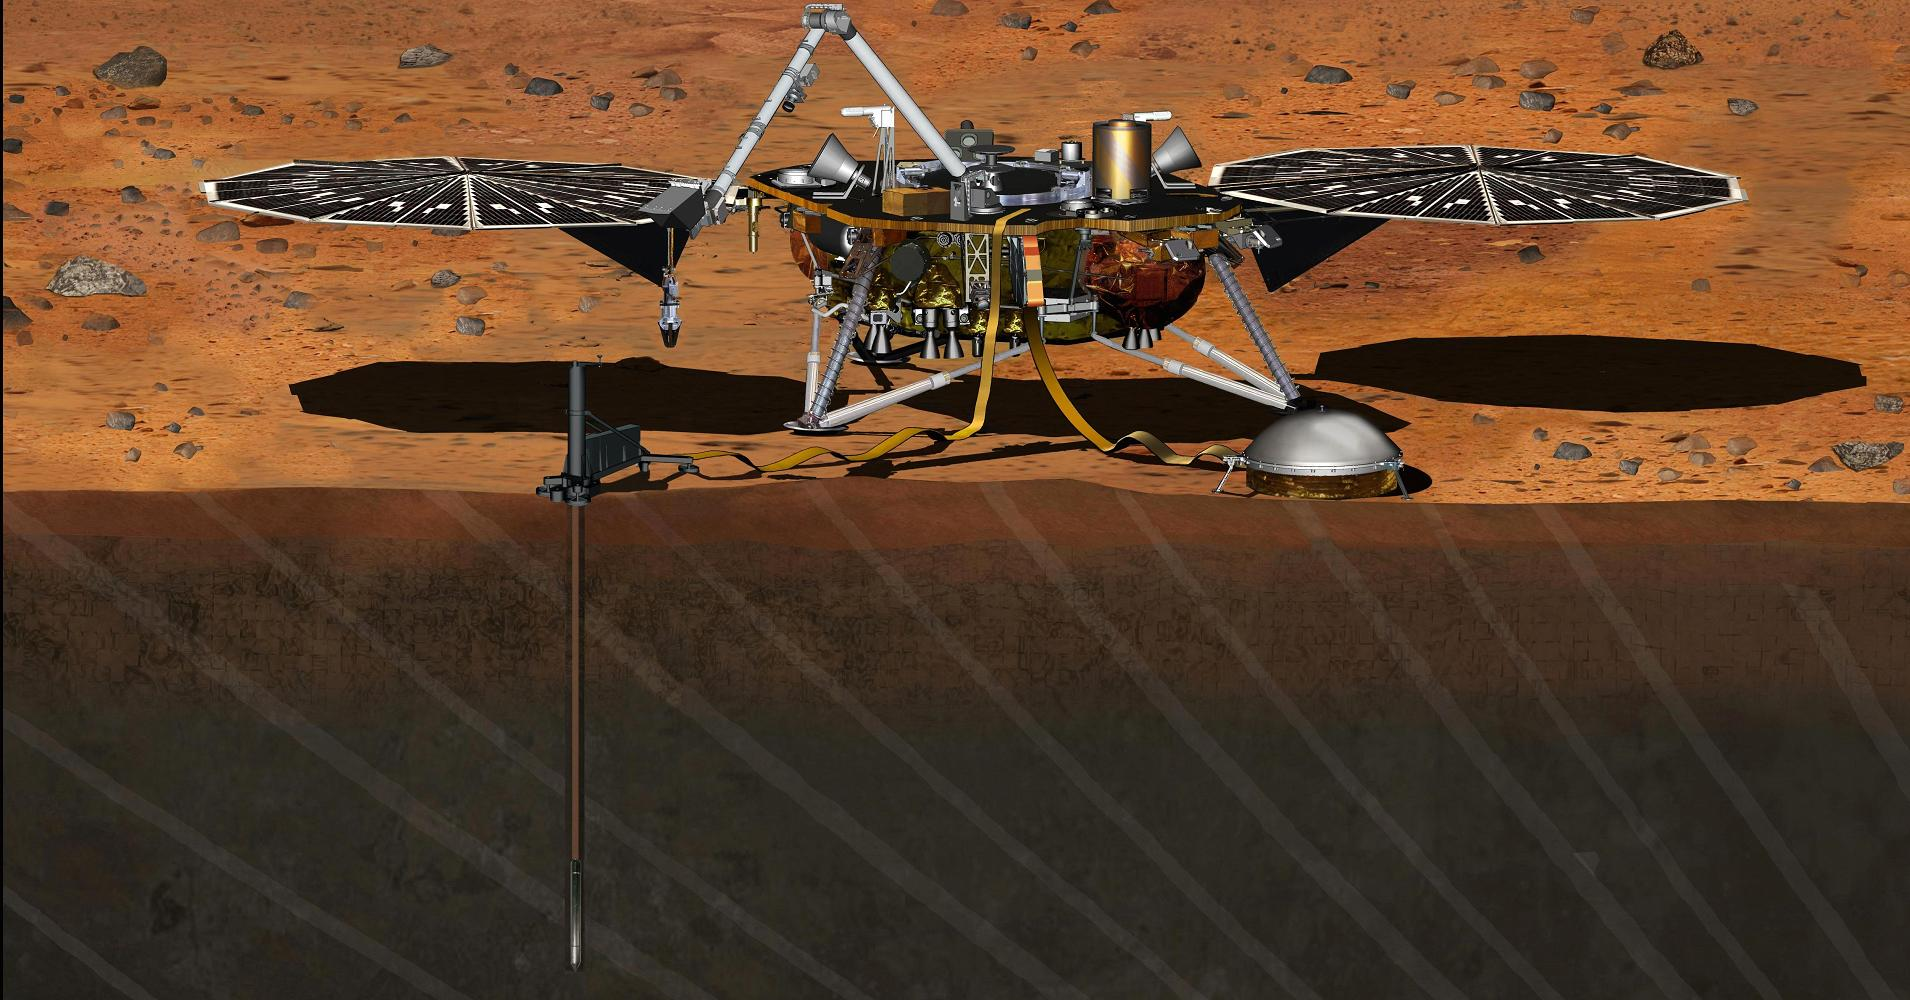 The InSight module successfully went to Mars